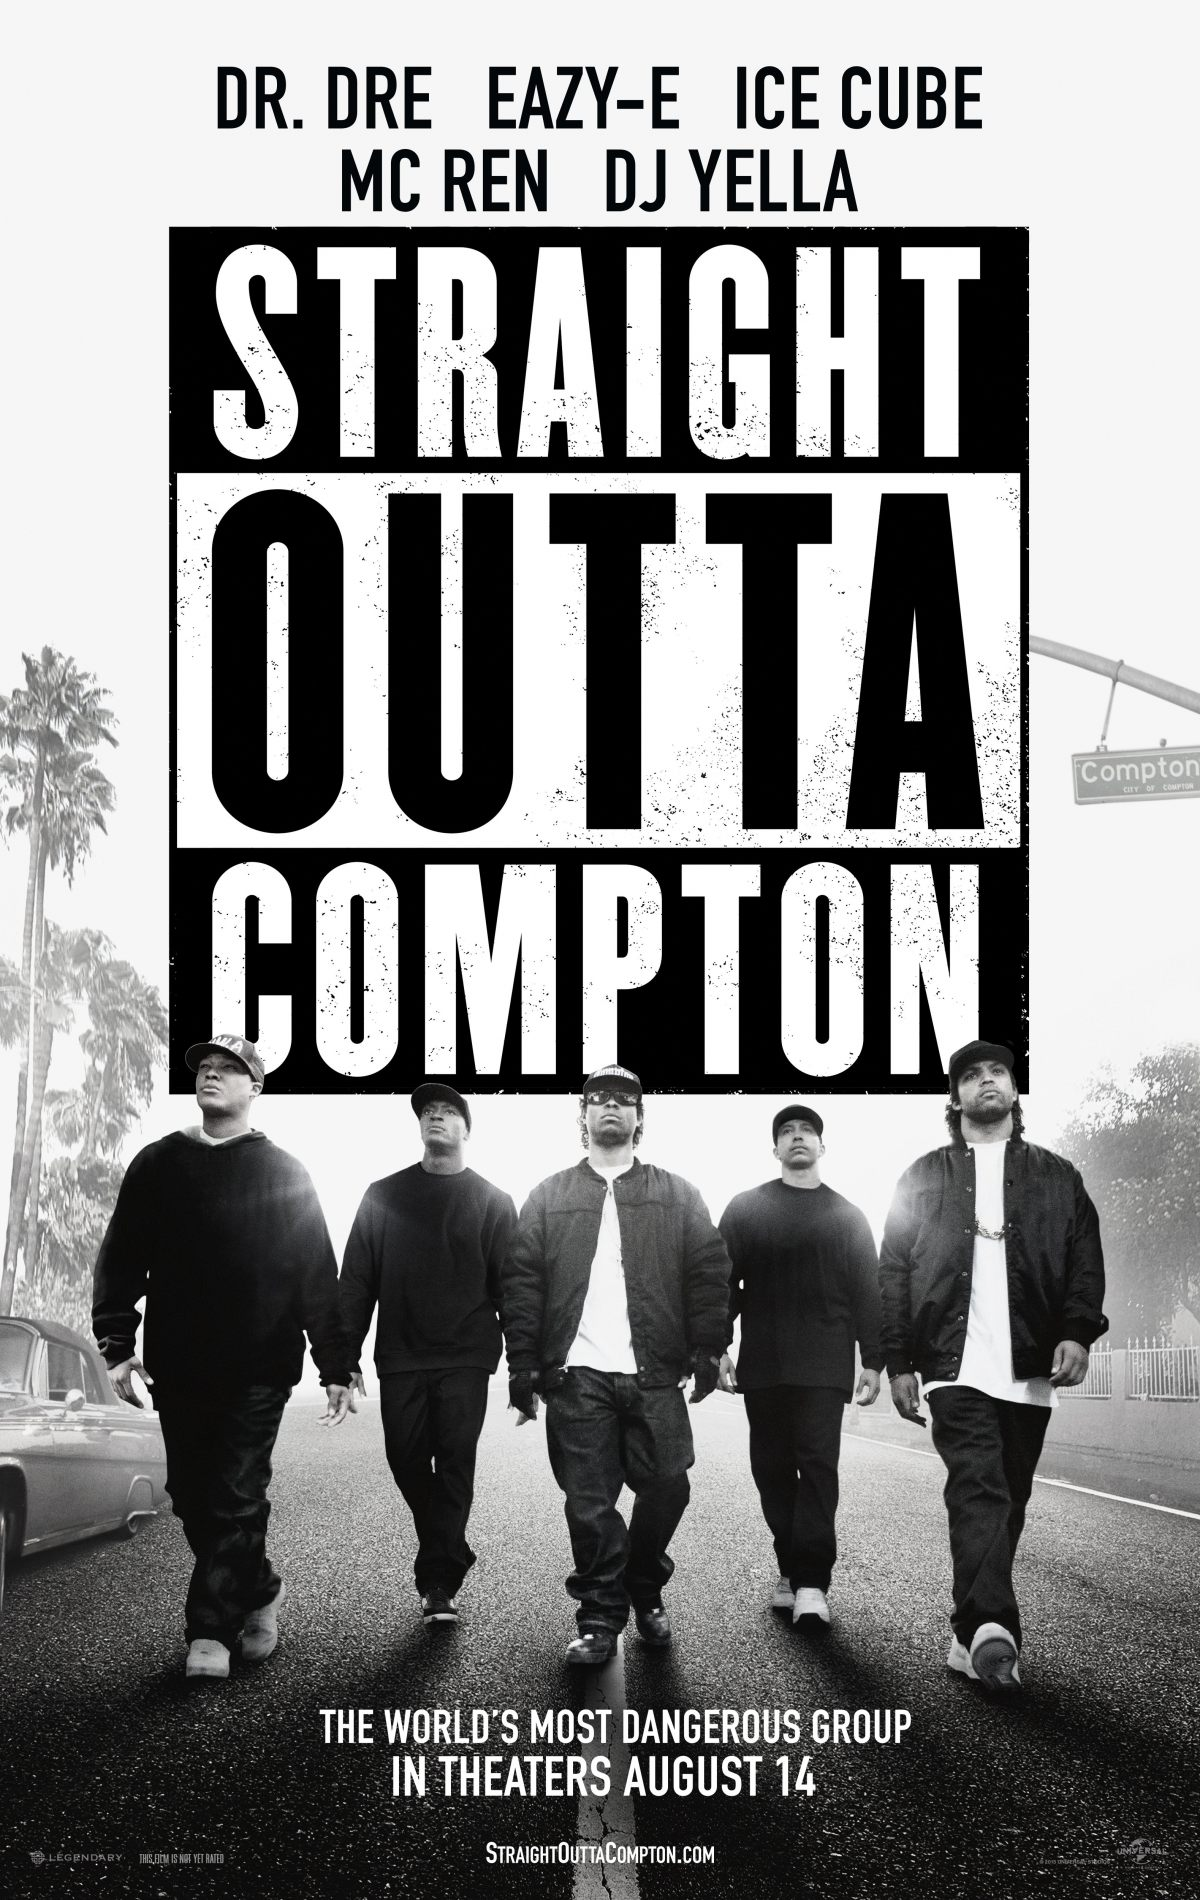 Watch the Straight Outta Compton trailer  here .